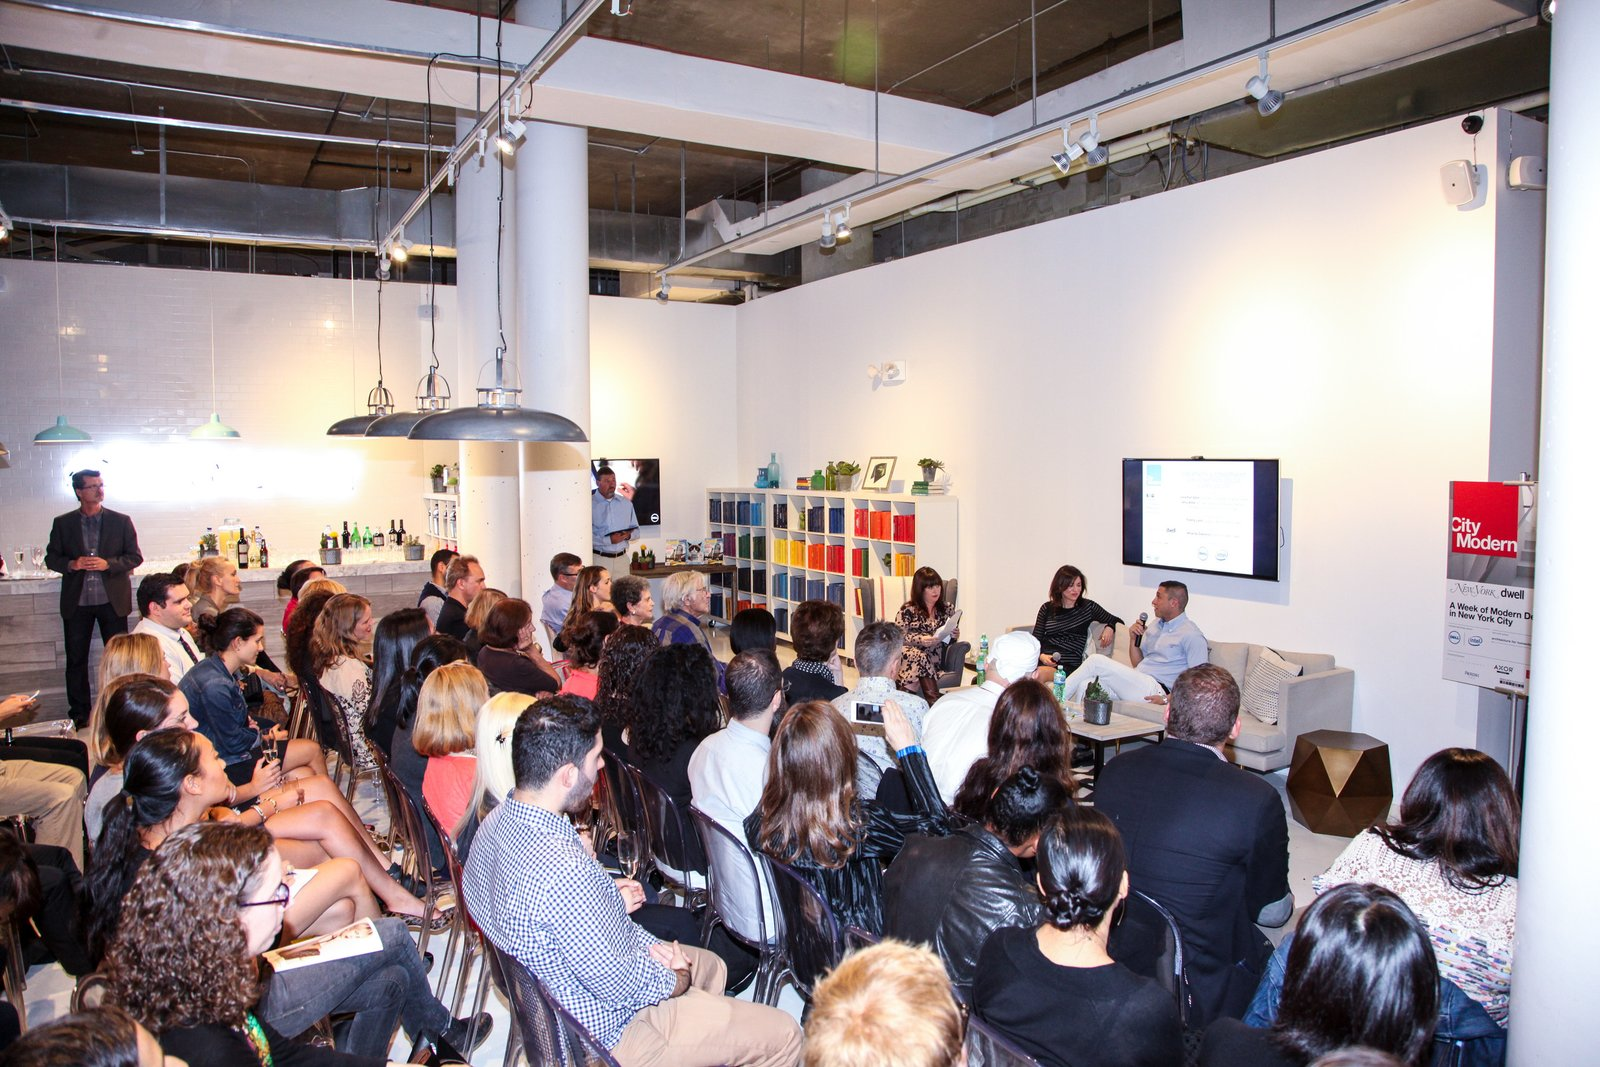 Guests listen in on the intersection between design authorship and inspiration with designer Jonathan Adler and his sister, art law specialist Amy Adler. Photo Courtesy Stephen Lovekin and Don Bowers.  Photo 8 of 13 in Dwell Celebrates Another Successful City Modern